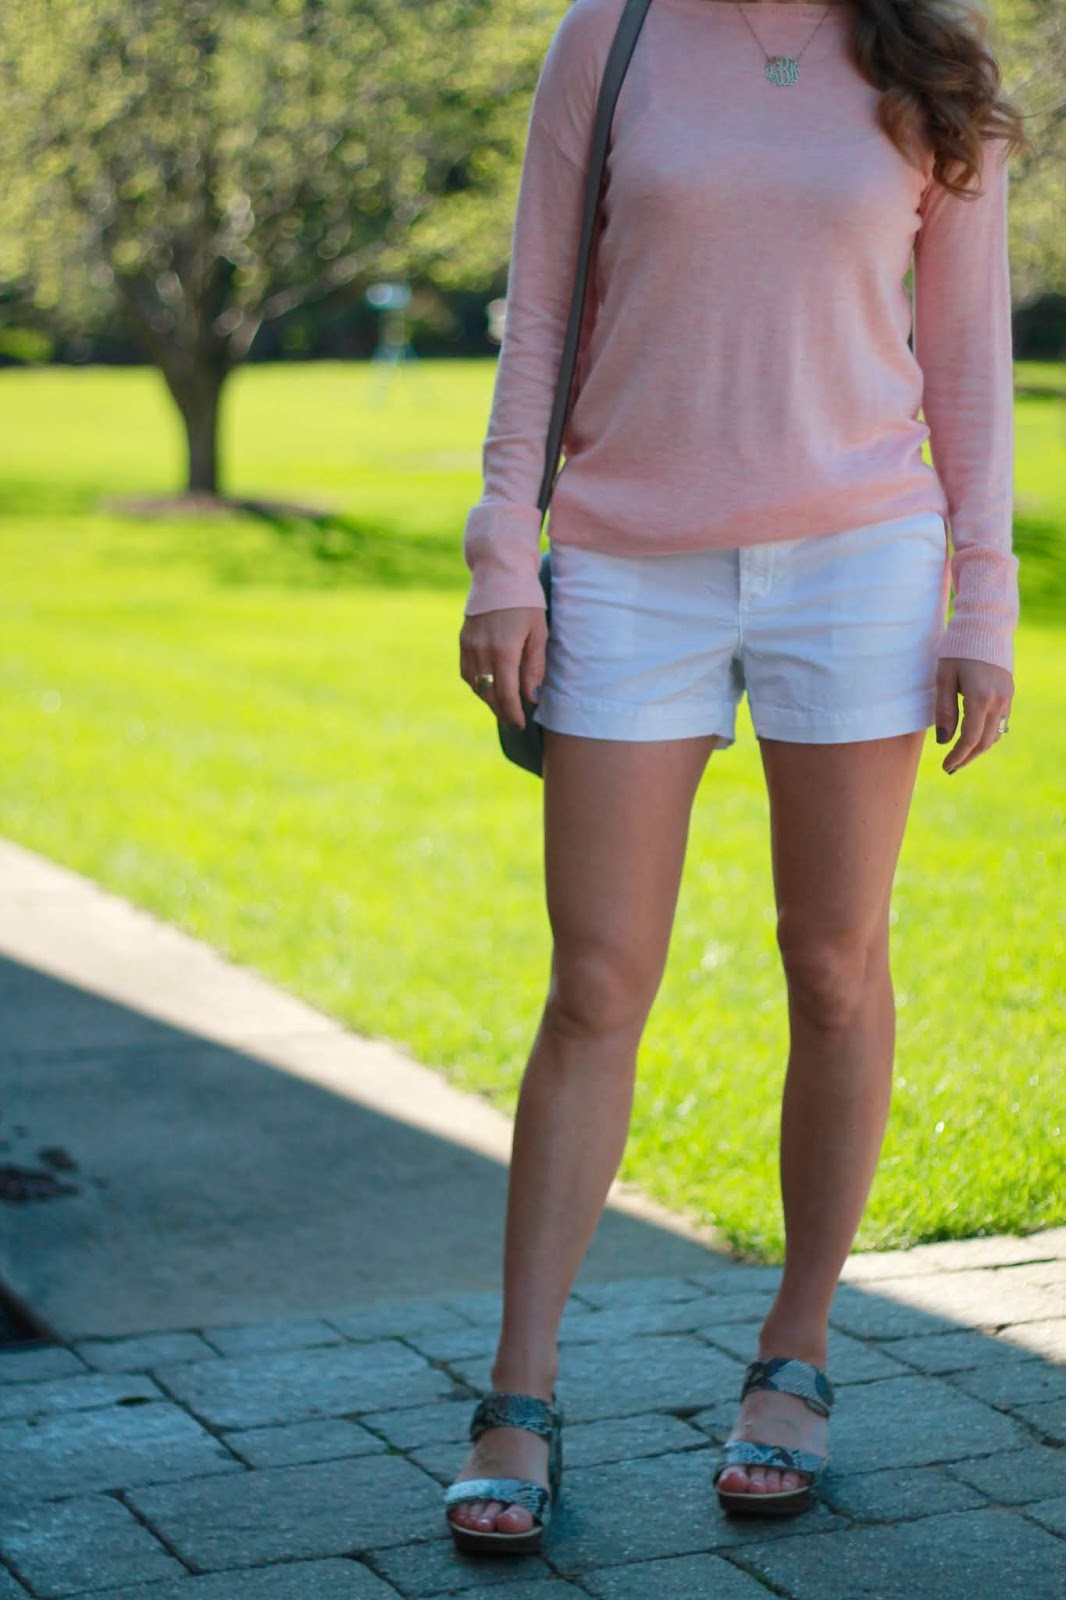 snakeskin wedges, pink sweater, white shorts, grey saddlebag